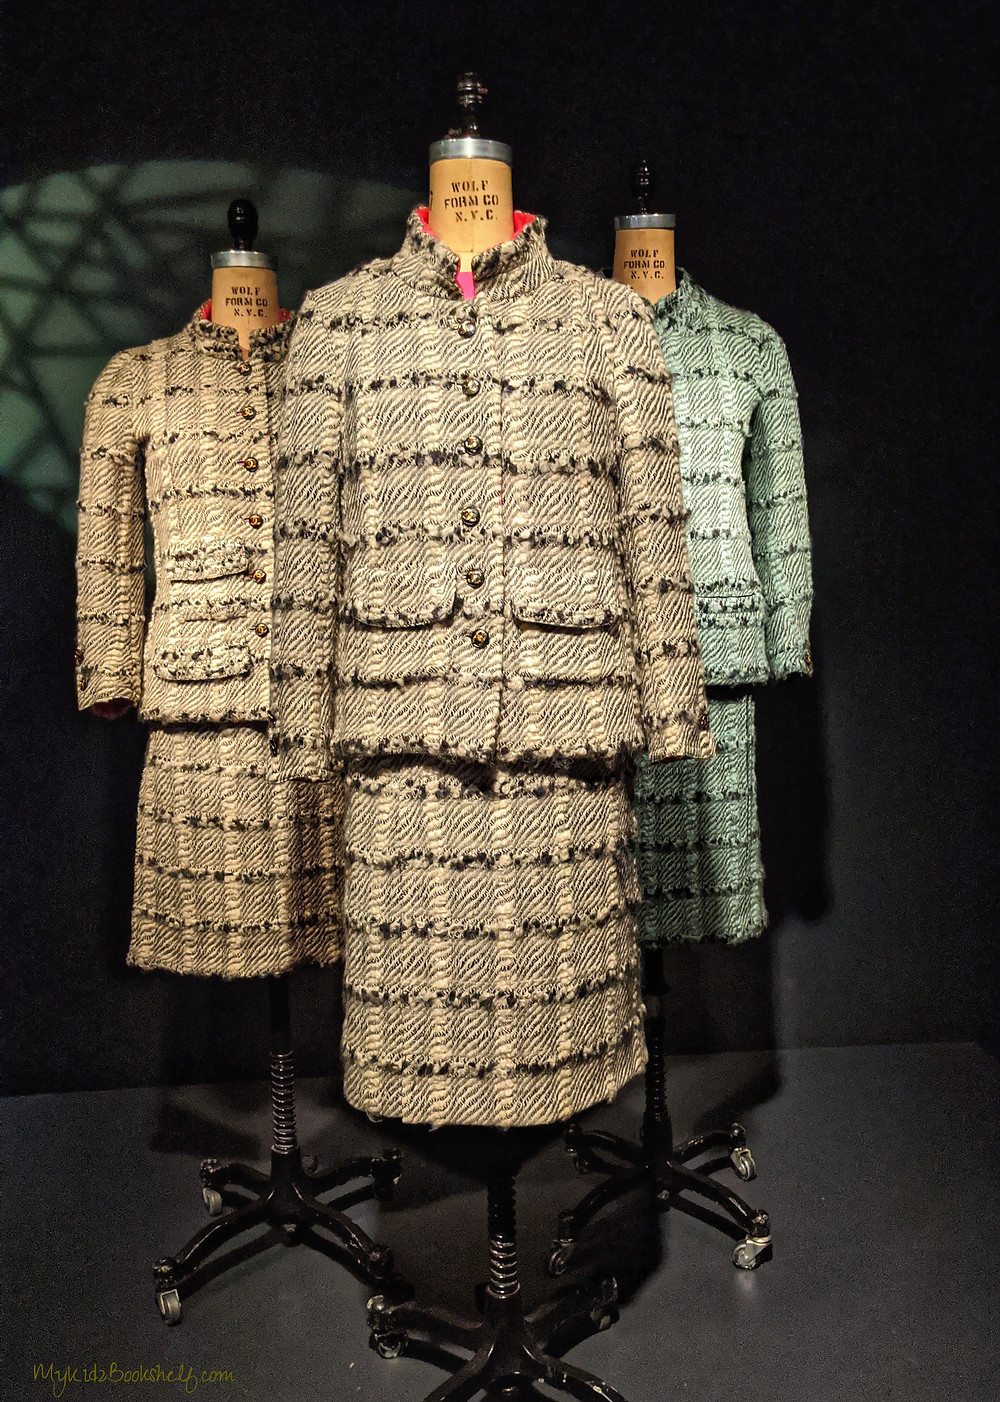 three-womens-suites-by-Chanel-one-real-one-commissioned-one-fake